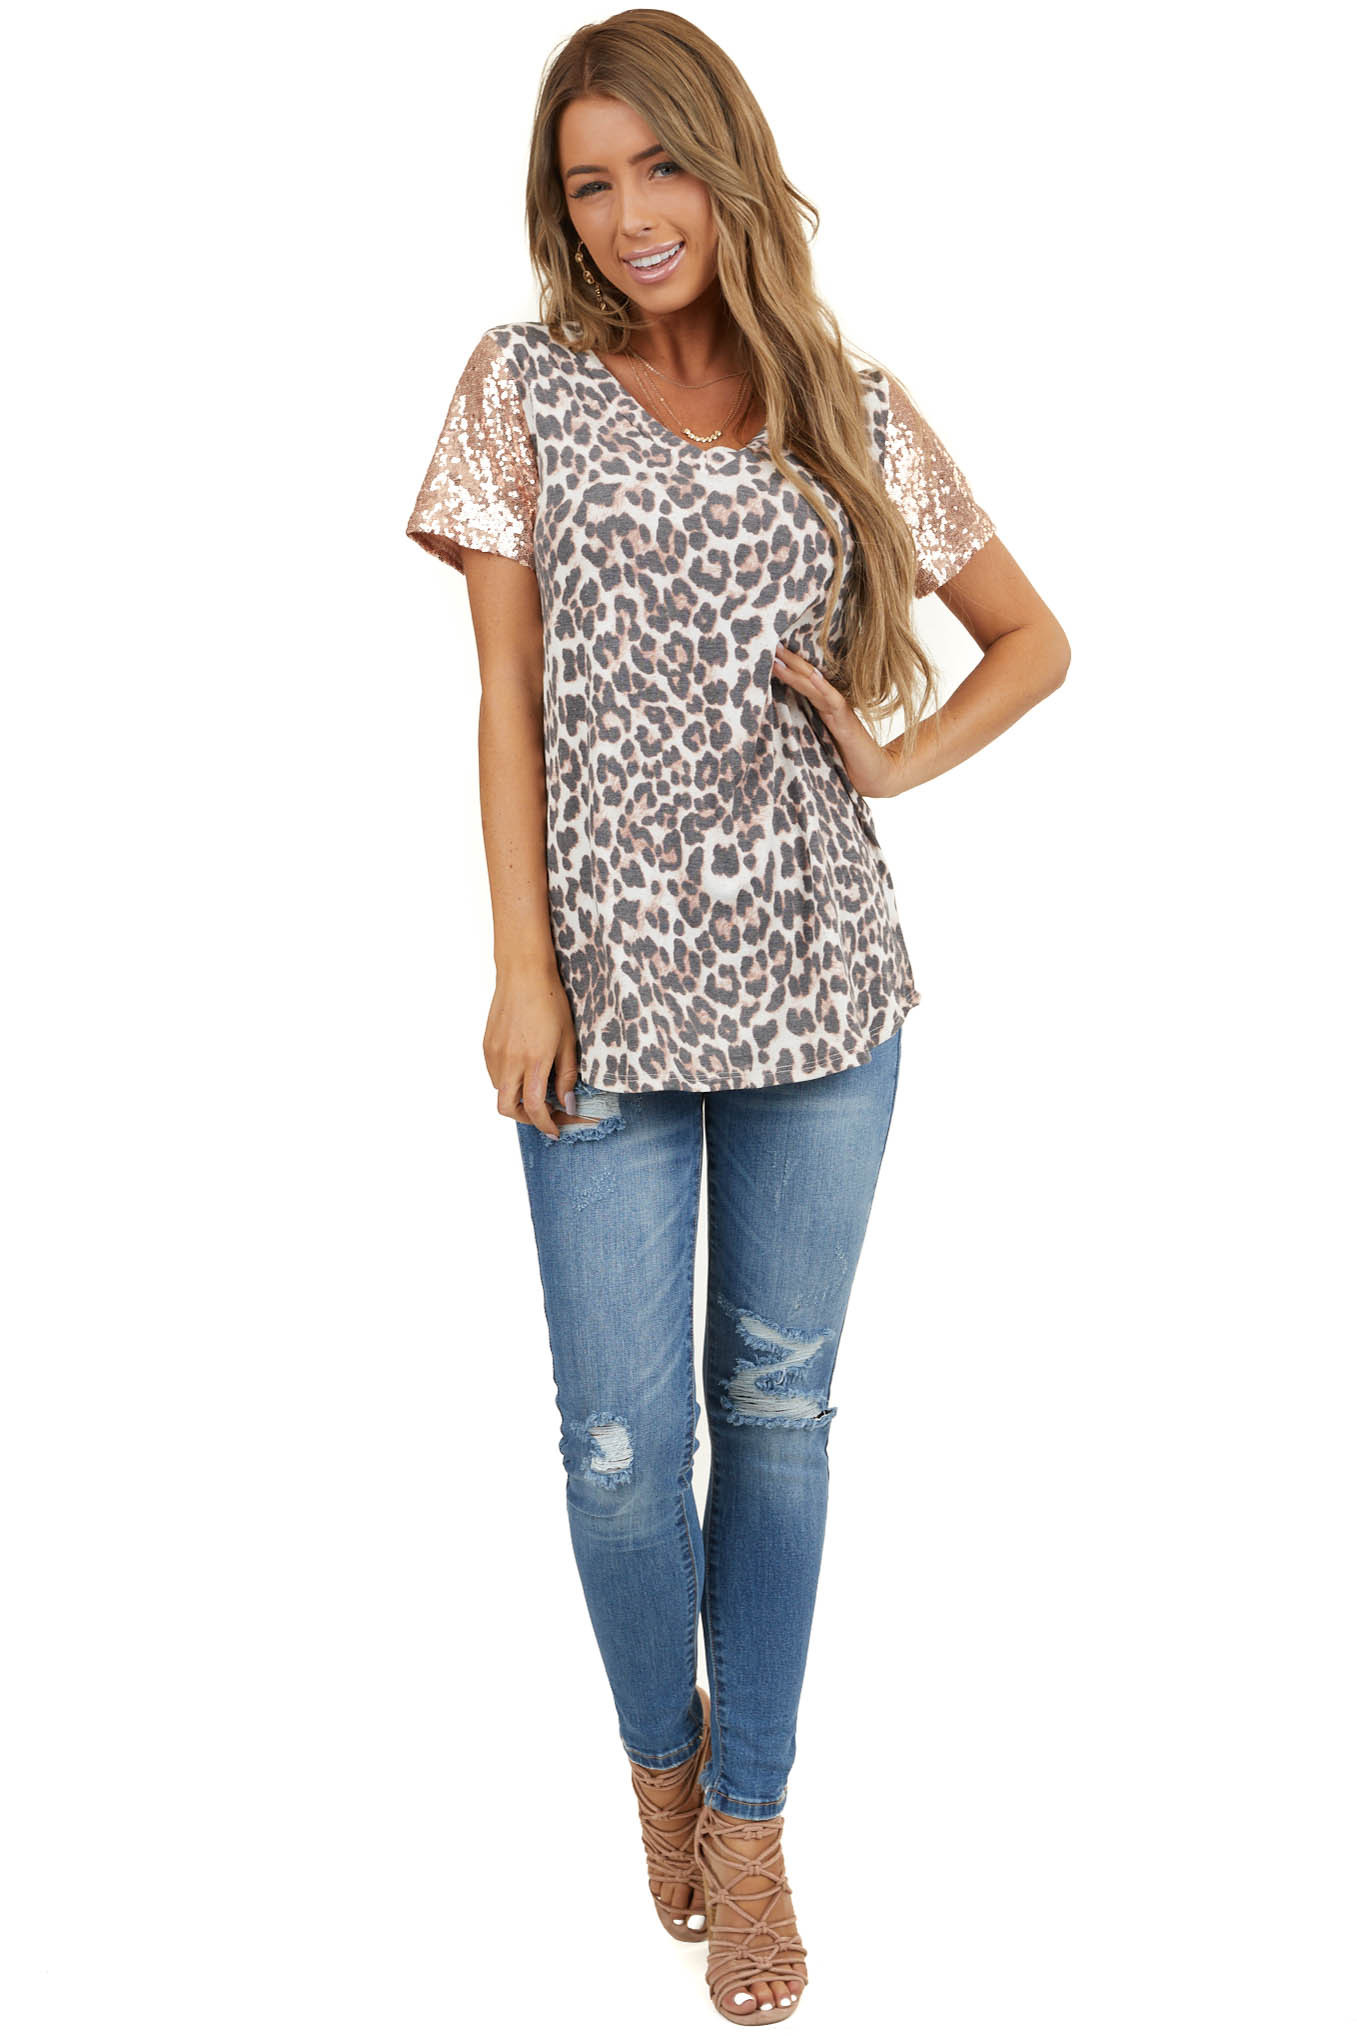 Dusty Rose Leopard Print Knit Top with Blush Sequin Sleeves